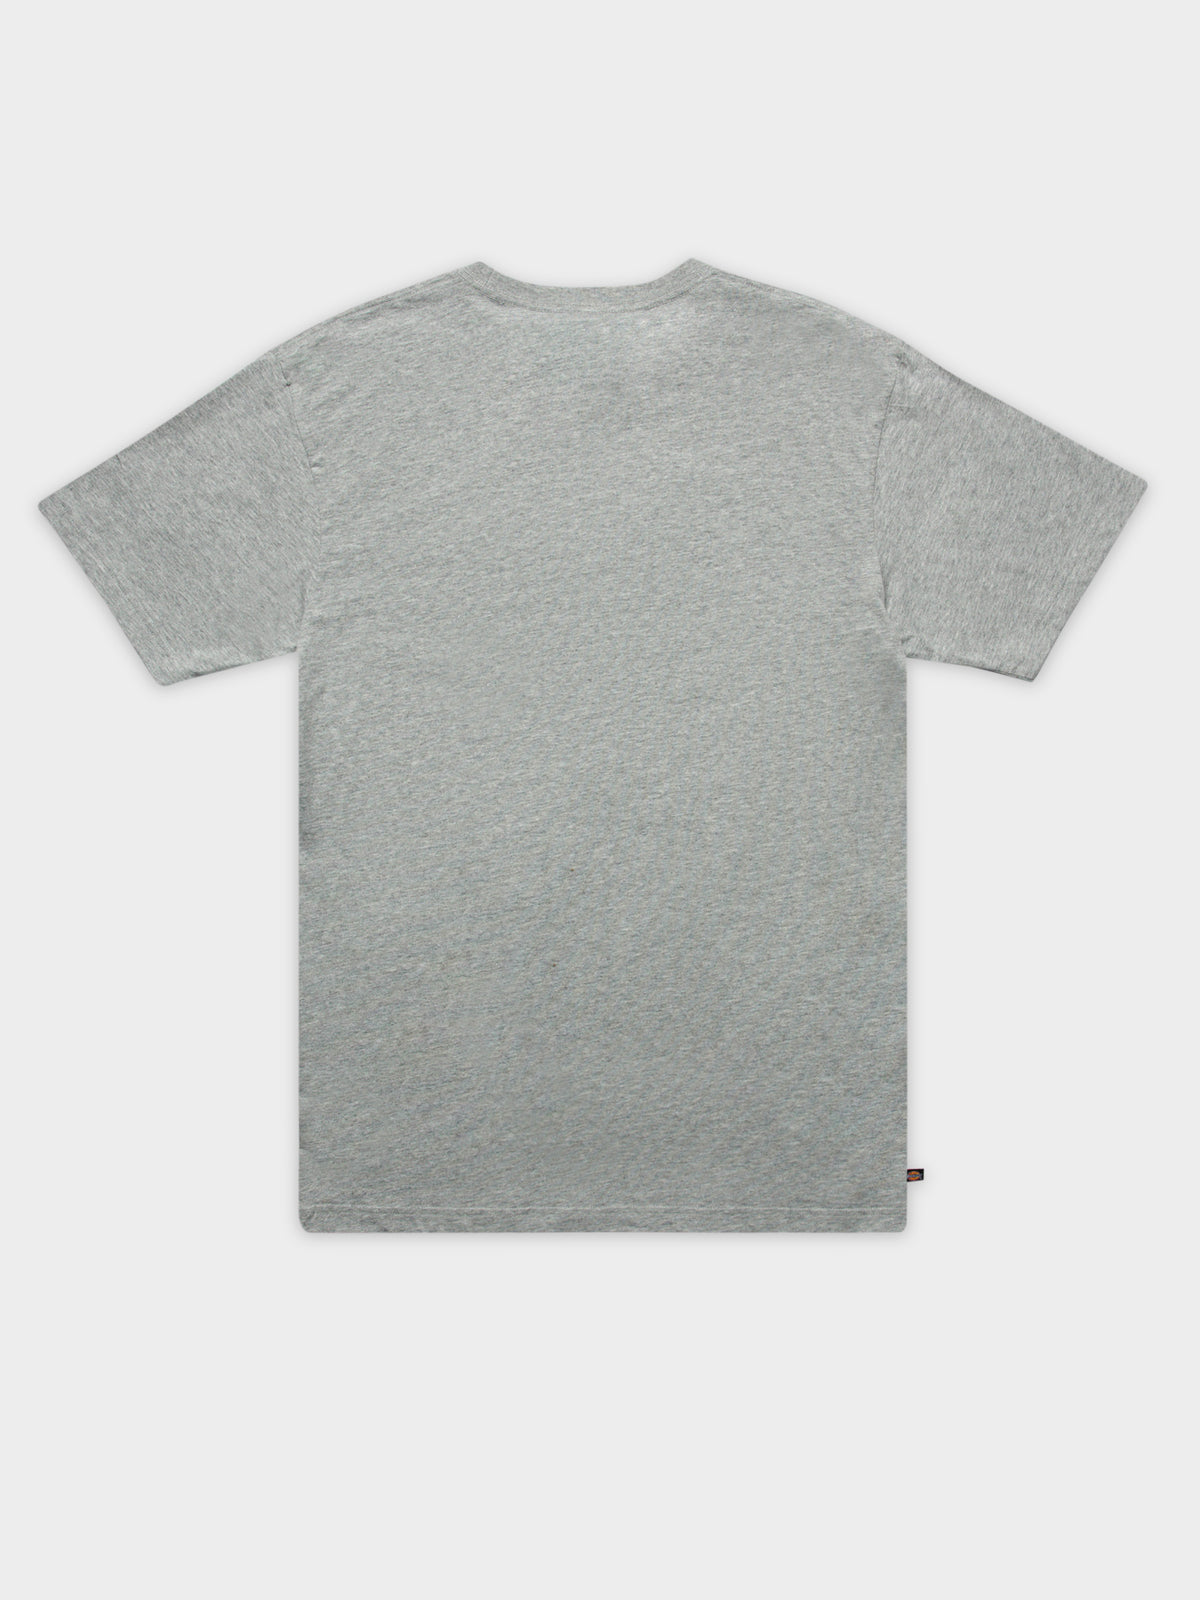 H.S Rockwood T-Shirt in Grey Marle